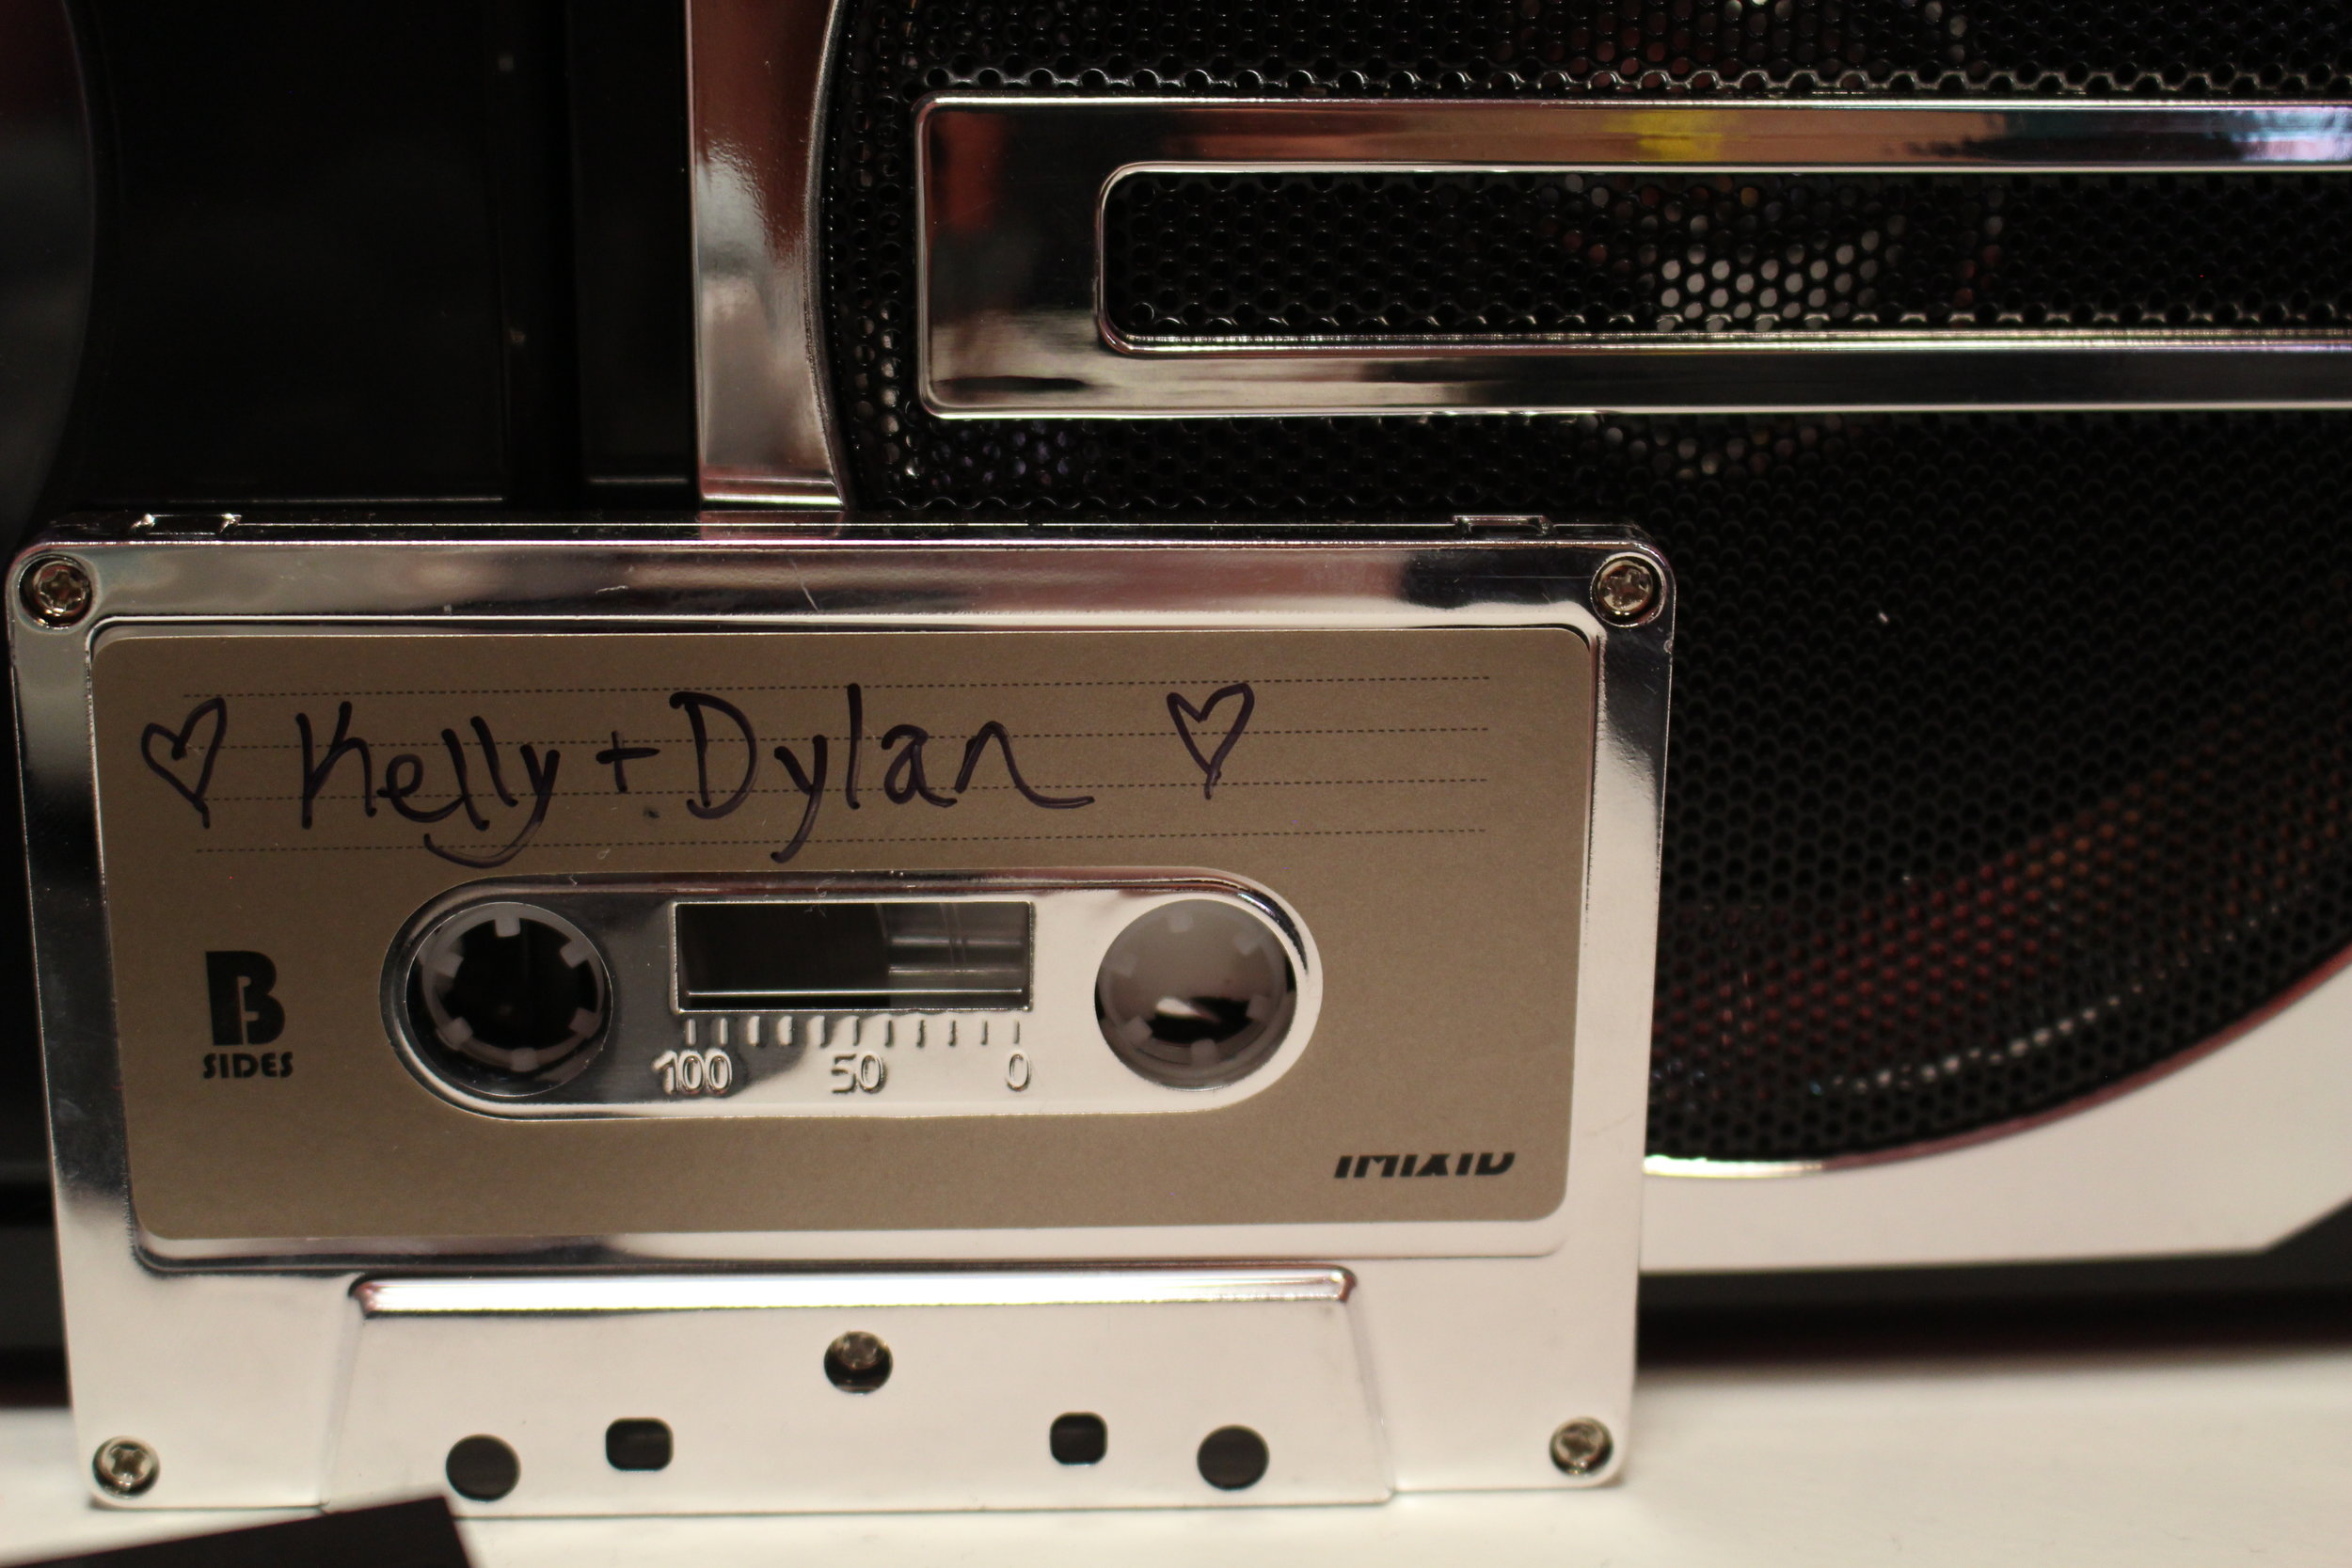 """Most people probably missed some of my favorite details, a series of 90210 mixtapes in the back room by """"Brenda & Brandon's Bathroom."""""""